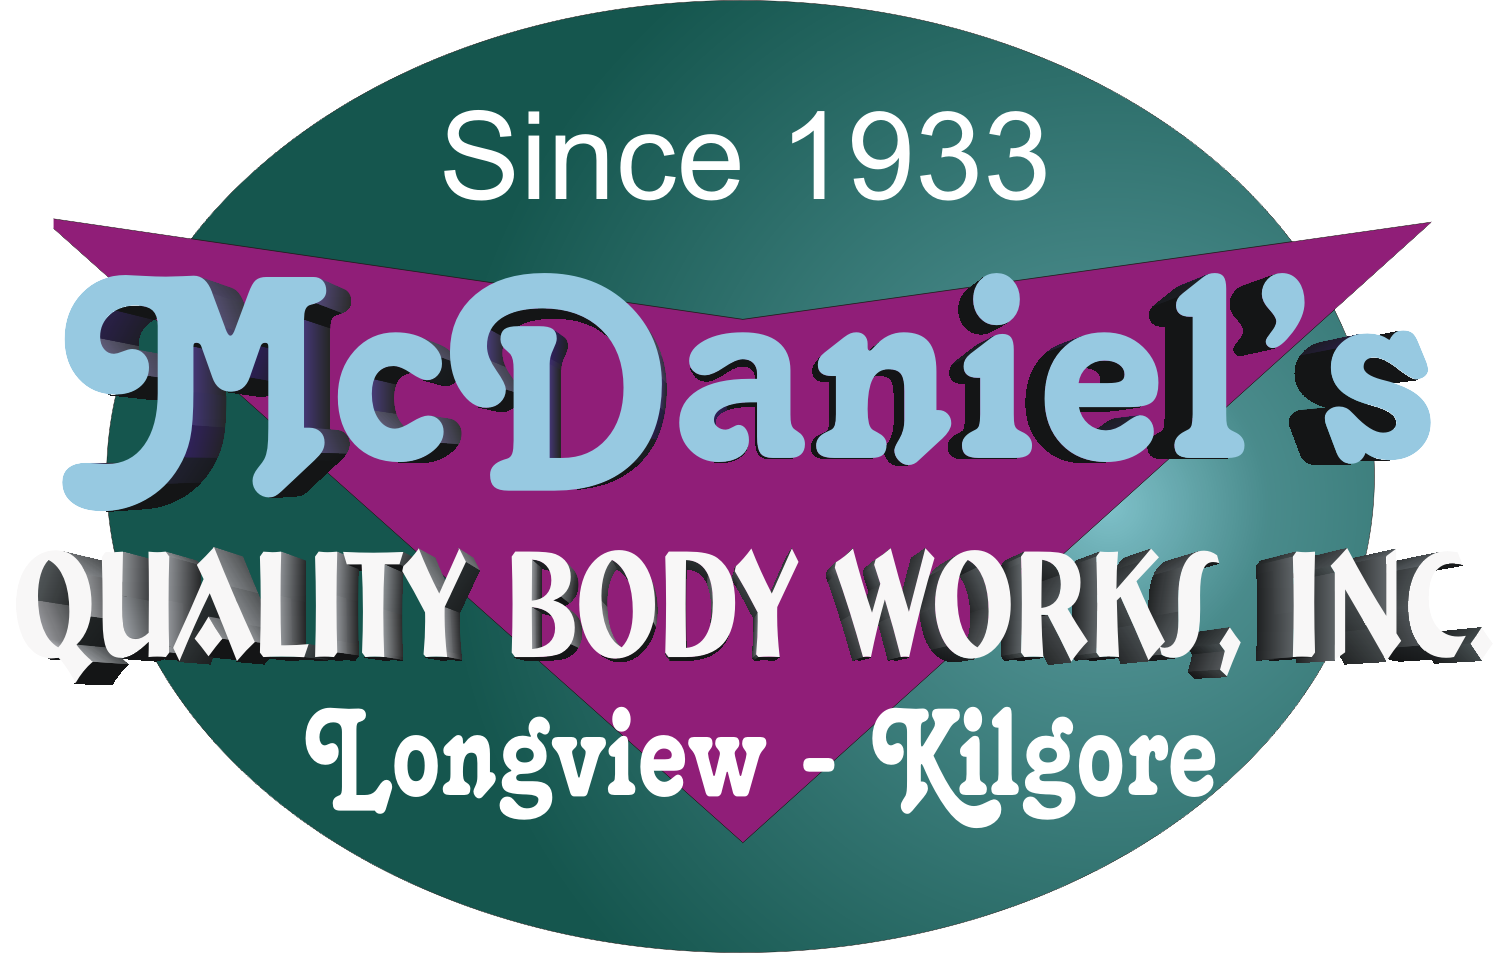 McDaniels Quality Body Works